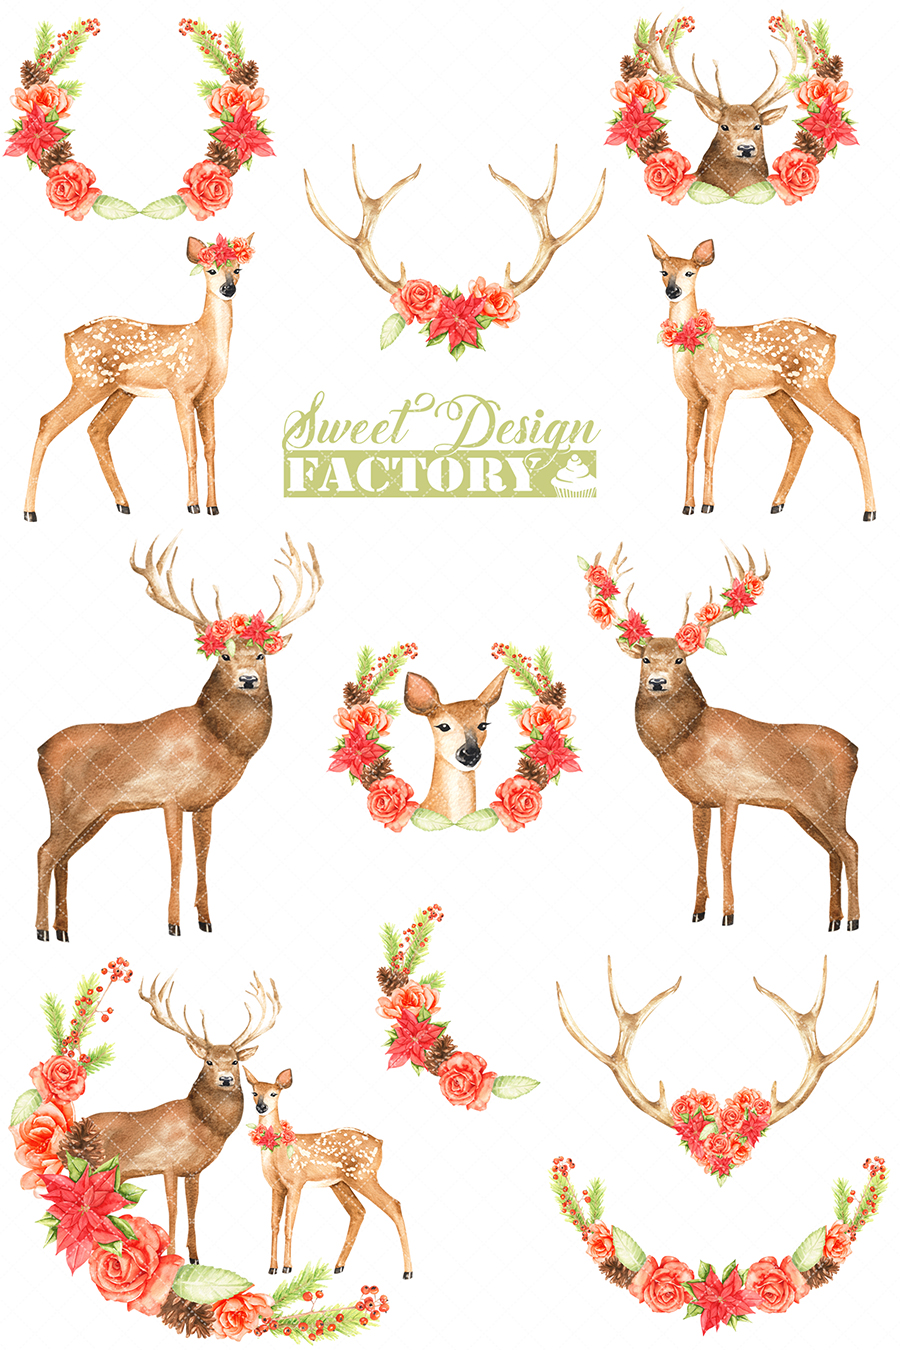 Deers and flowers cliparts example image 3